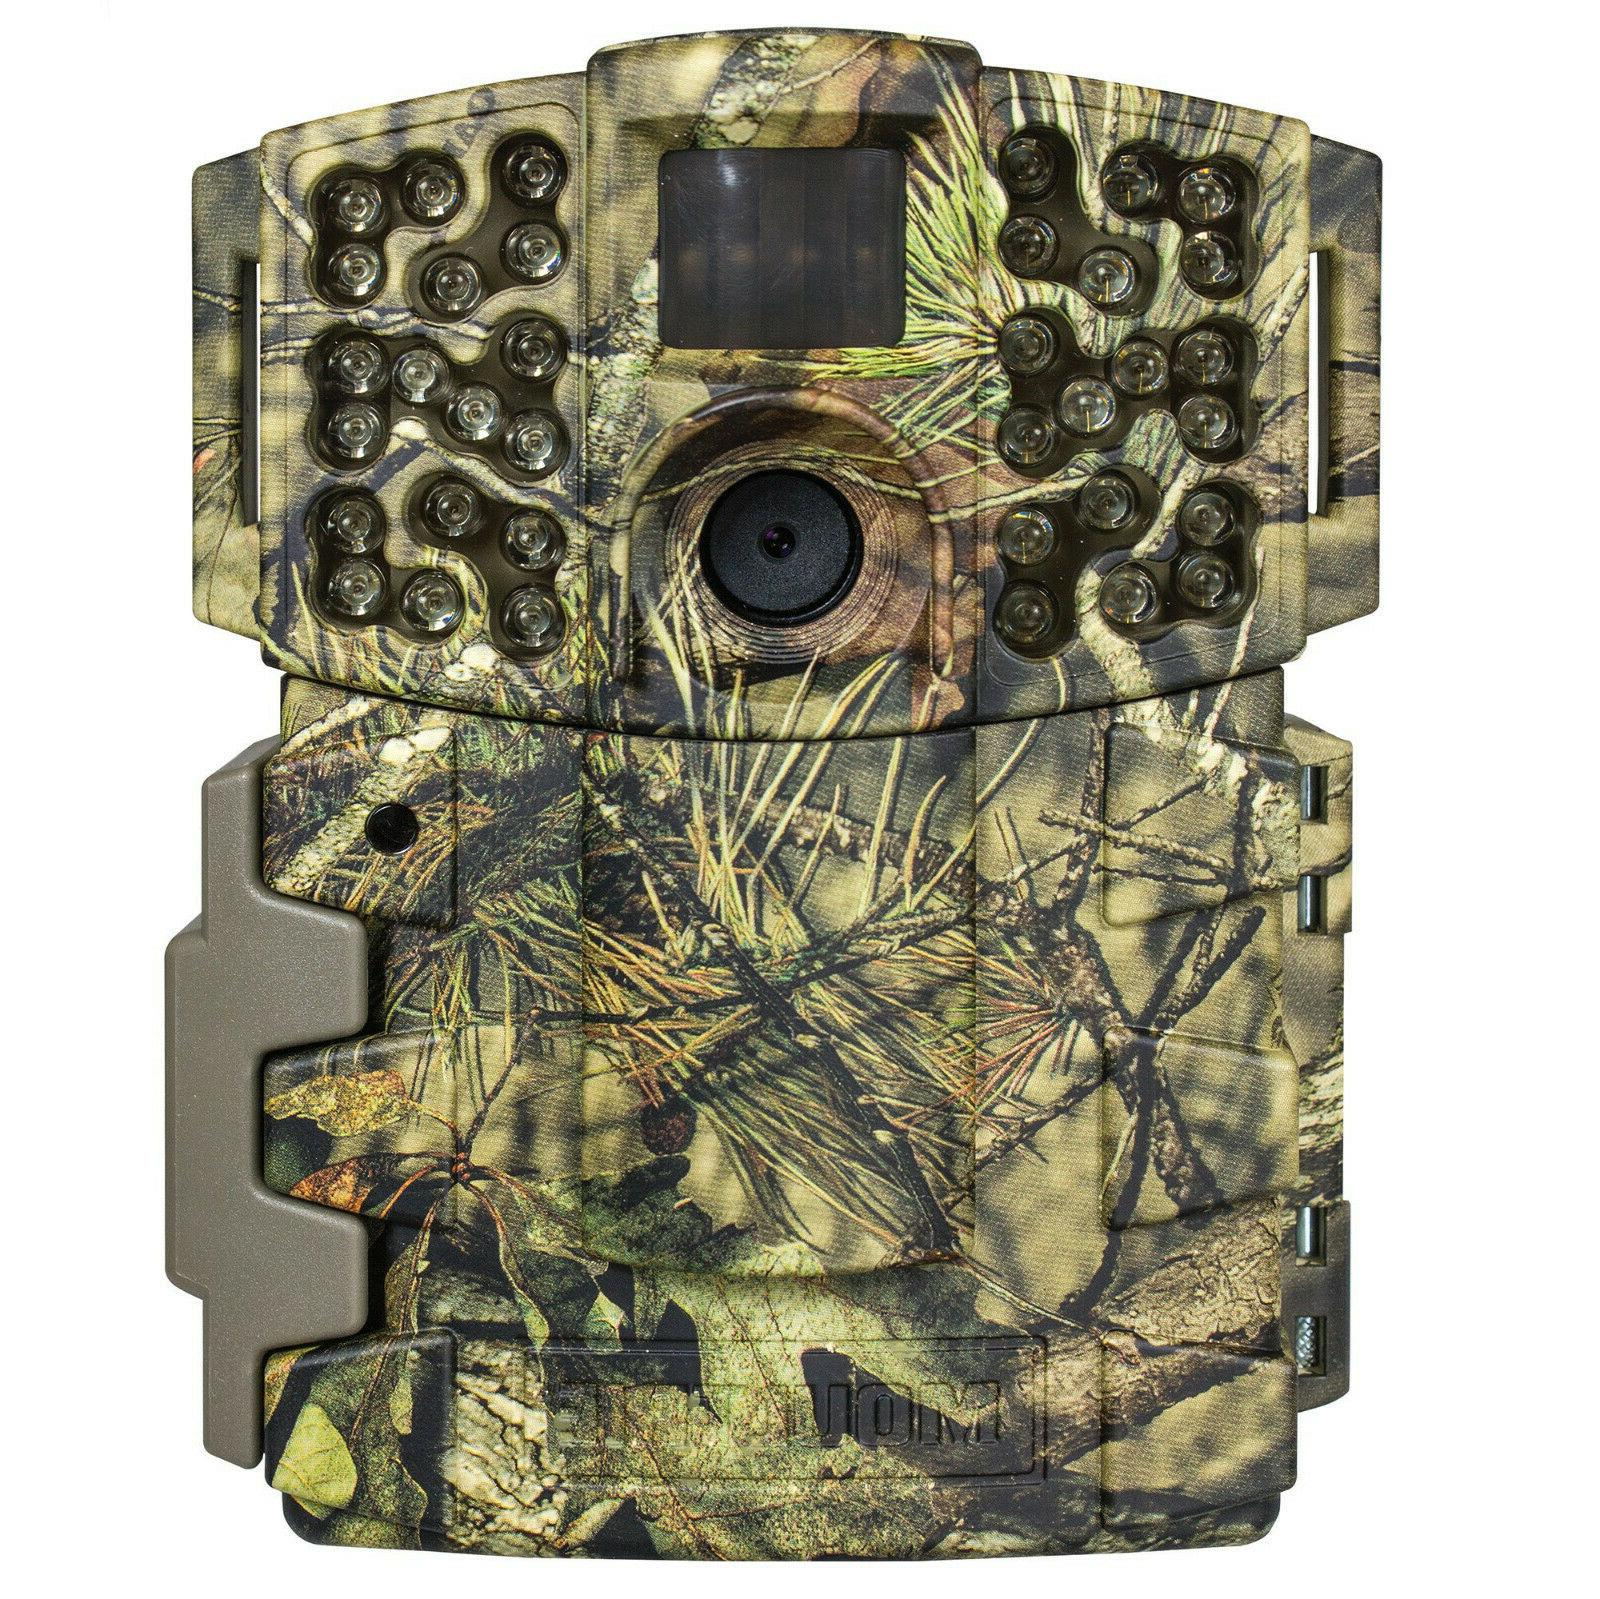 Moultrie M-999i 20MP Infrared Game Mossy Oak Camo